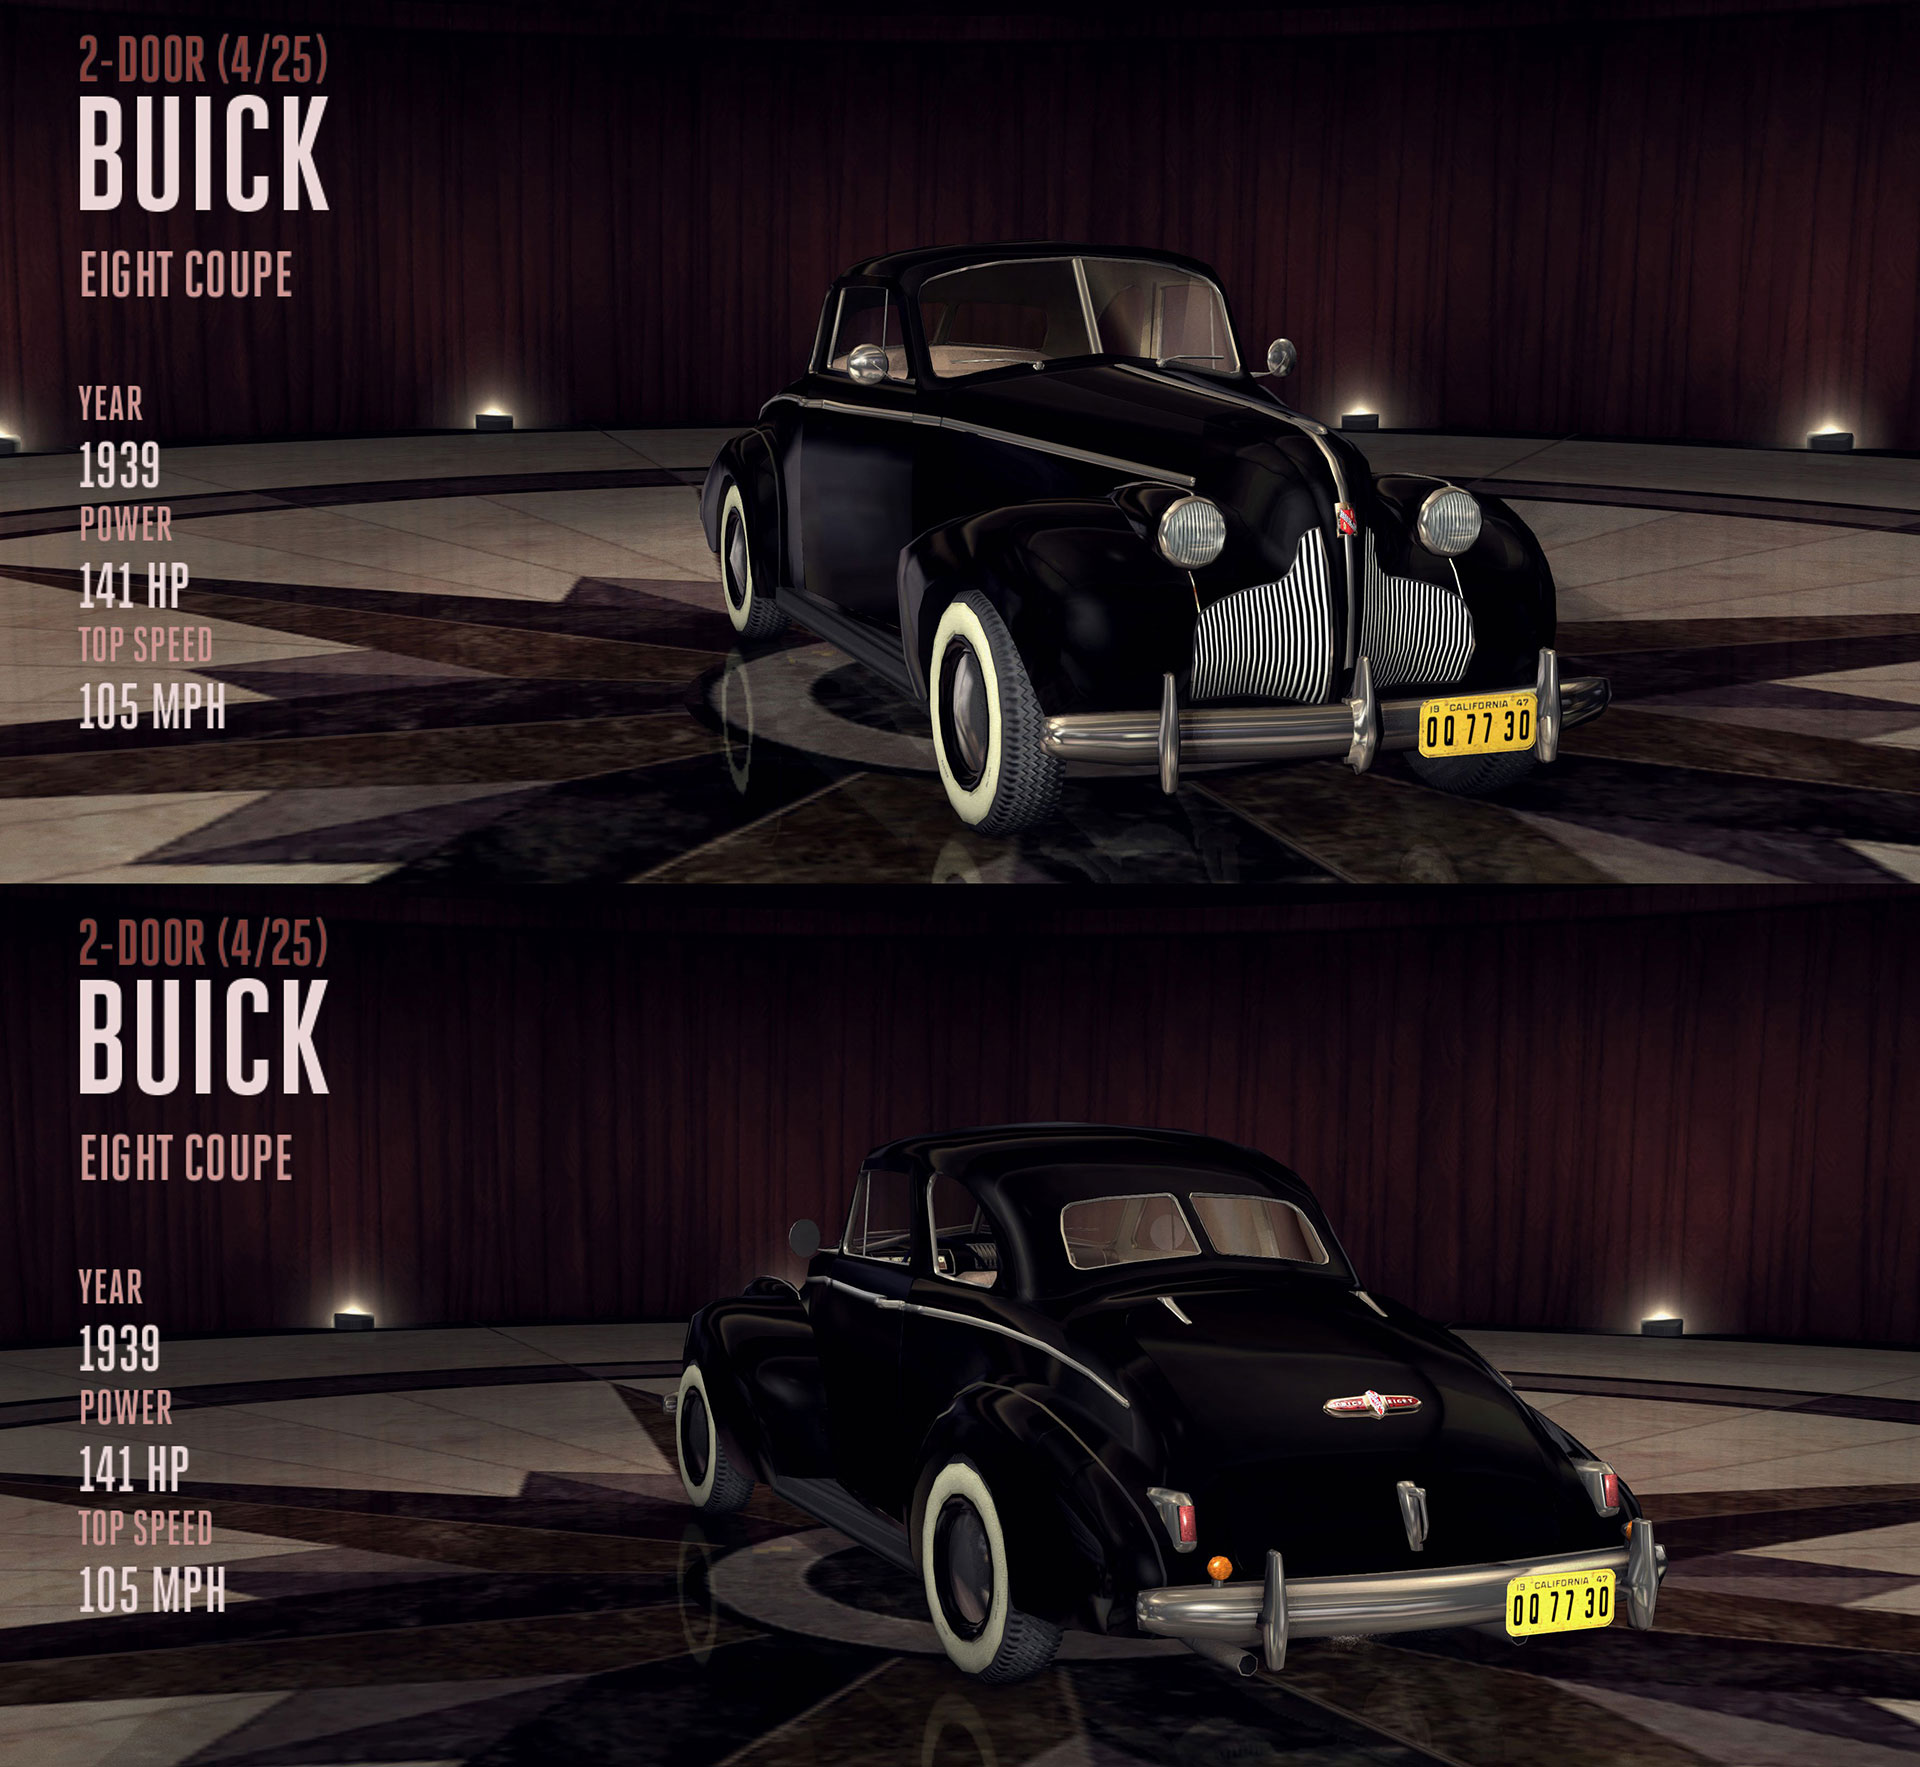 Archivo:1939-buick-eight-coupe.jpg